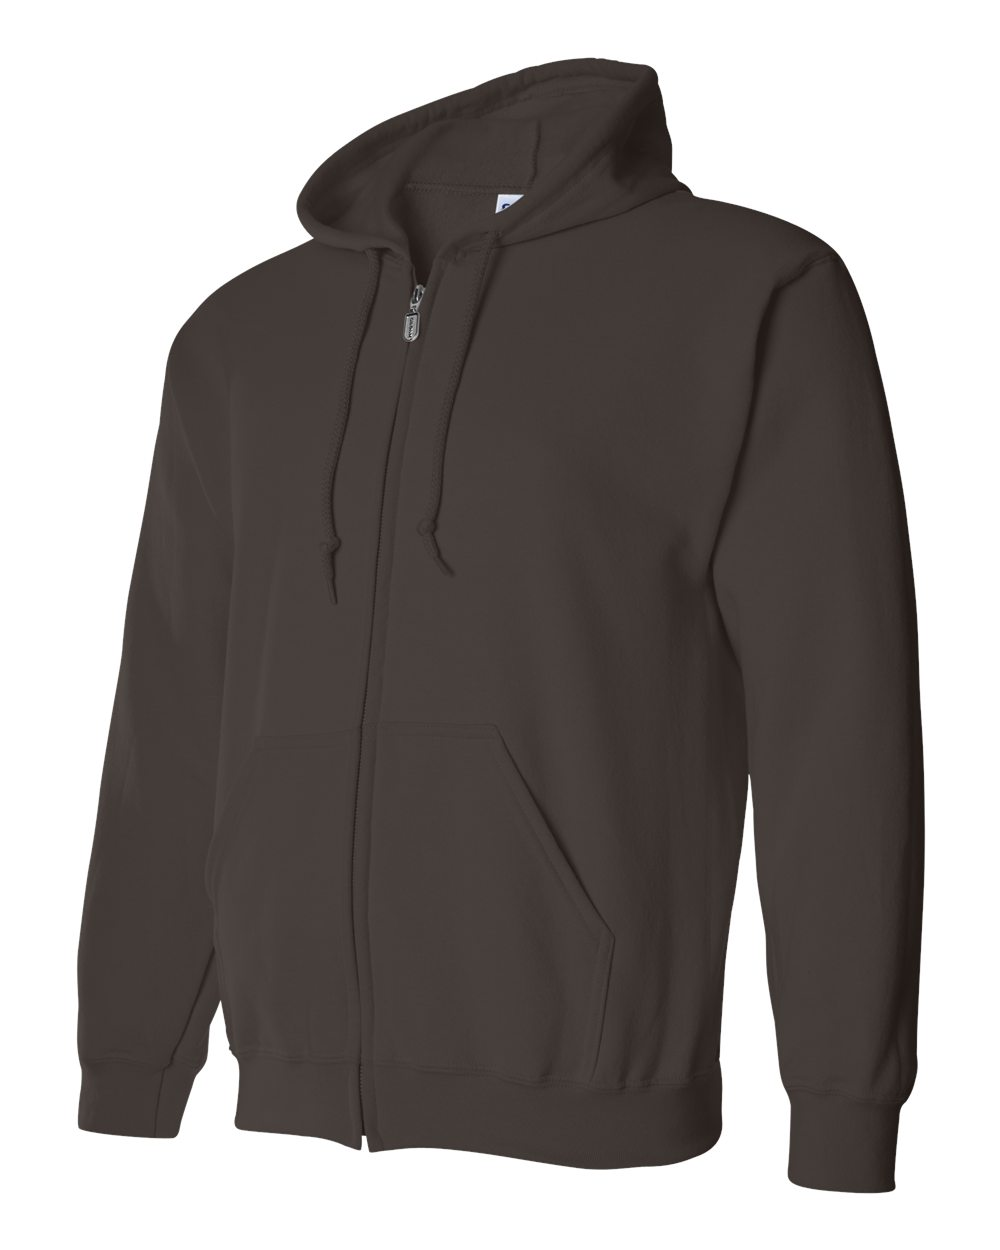 Gildan Heavy Blend Full Zip Hoodie GIL18600 Dark Chocolate